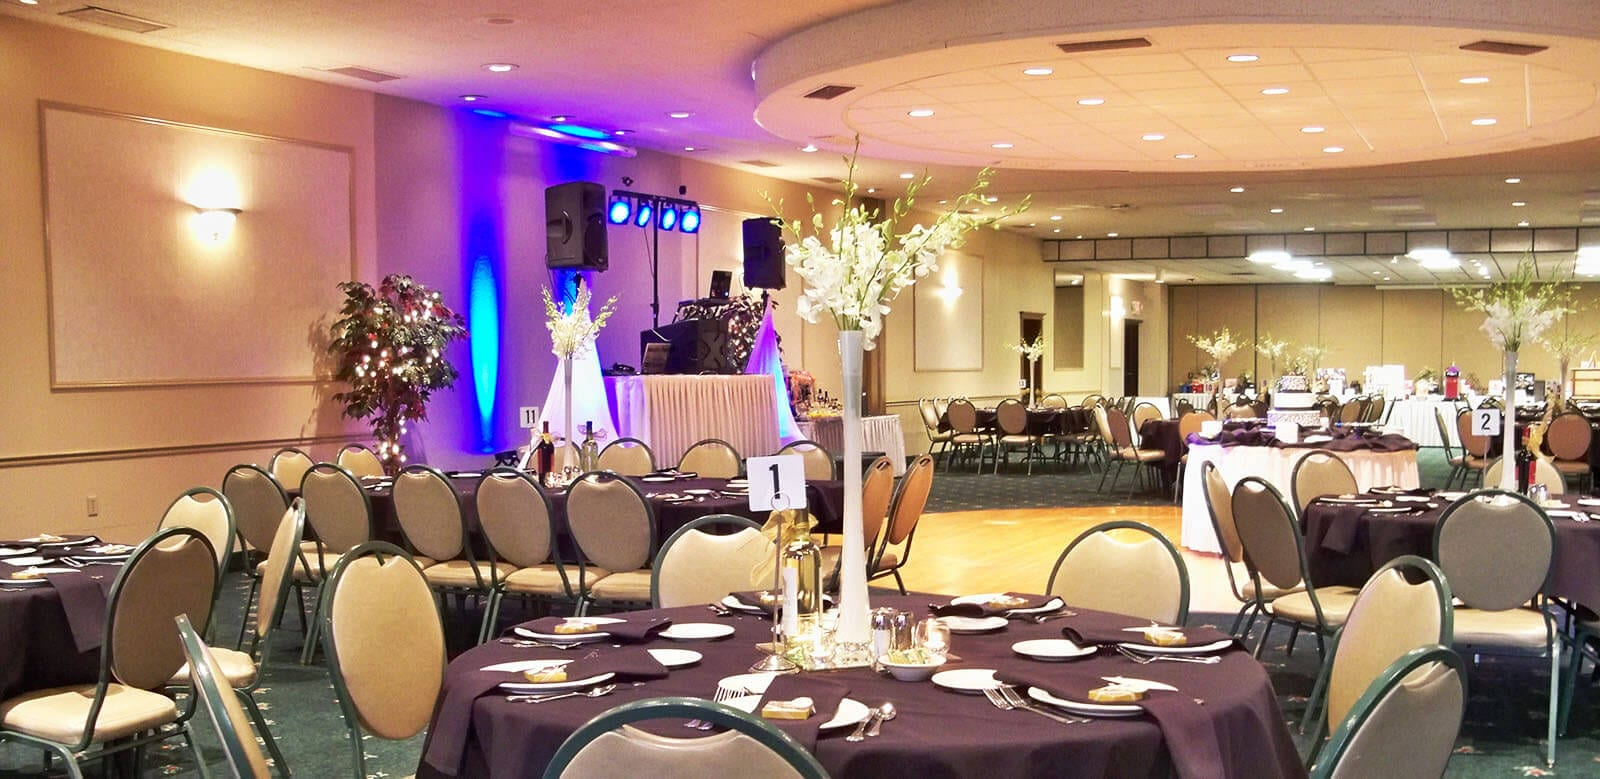 Patrician Party Center - set up for a Sapphire wedding package